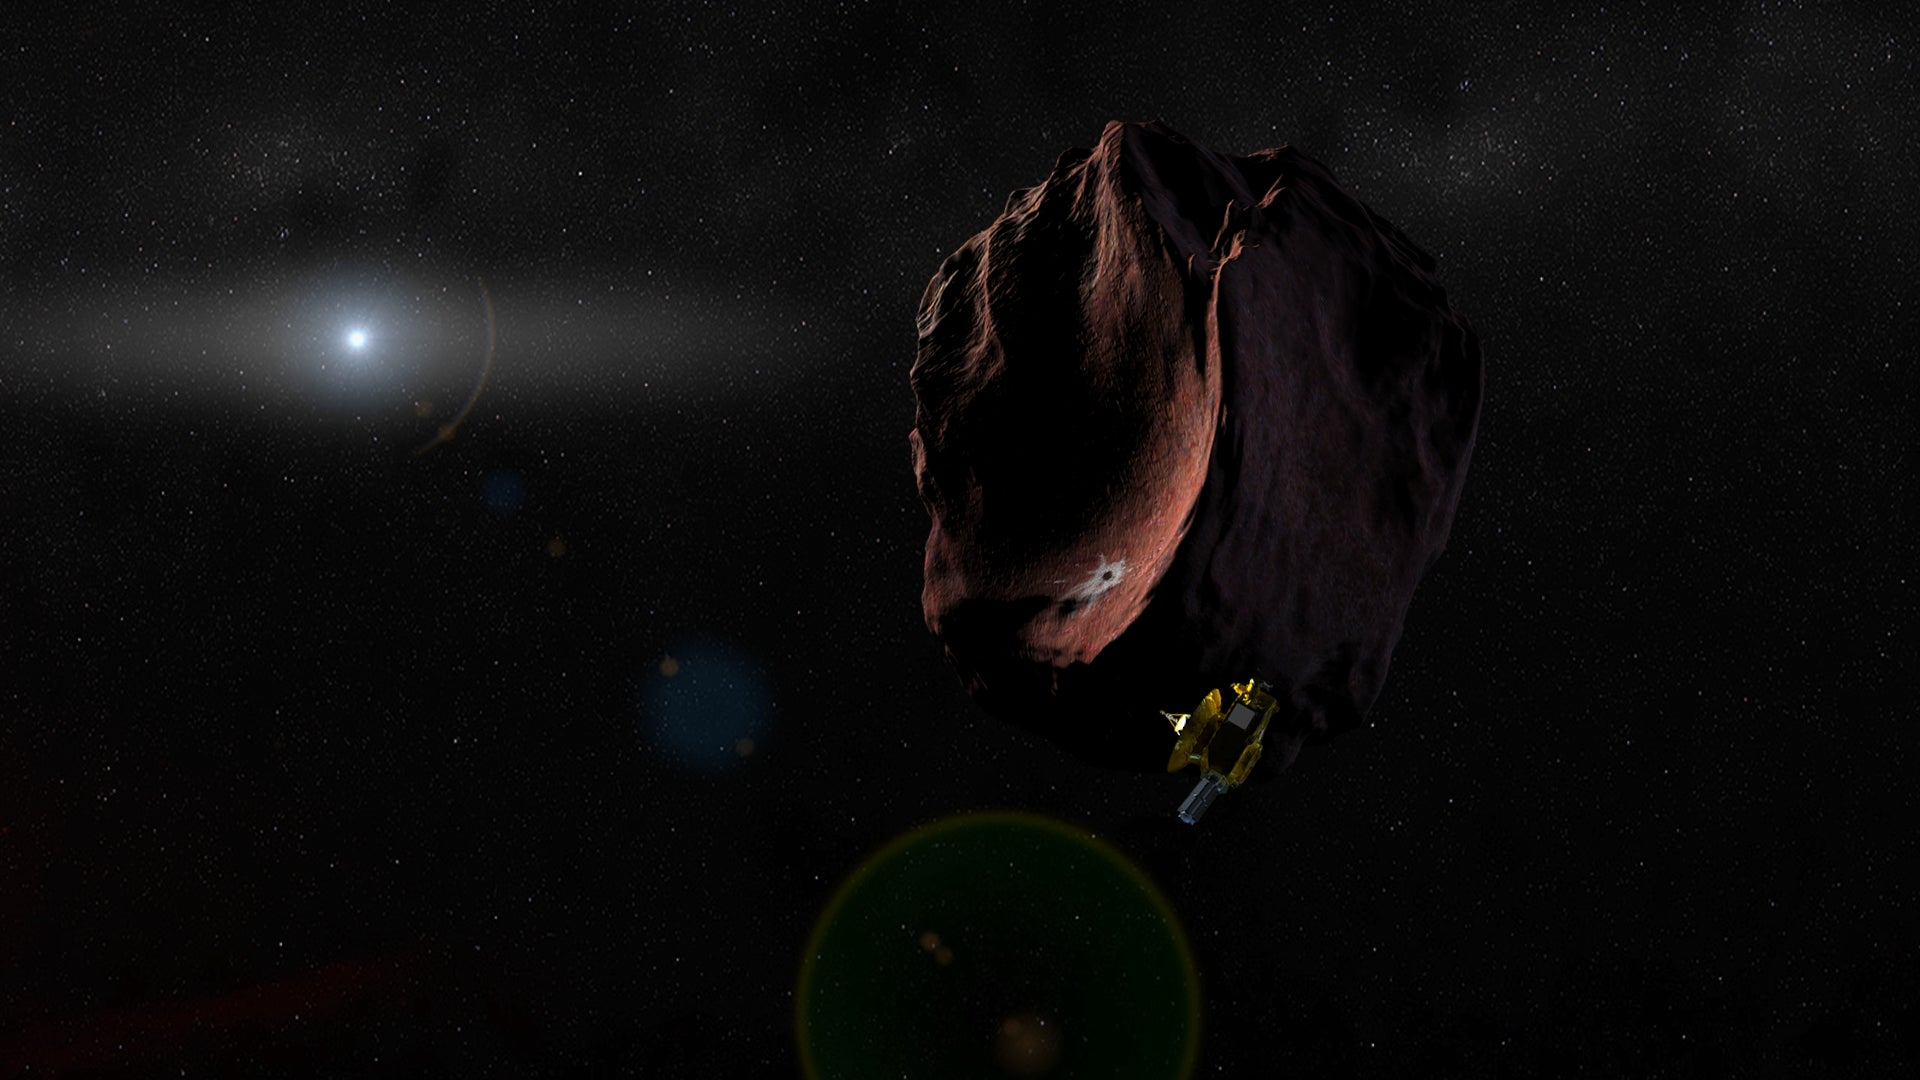 Expect To See Images From the Kuiper Belt in 2019